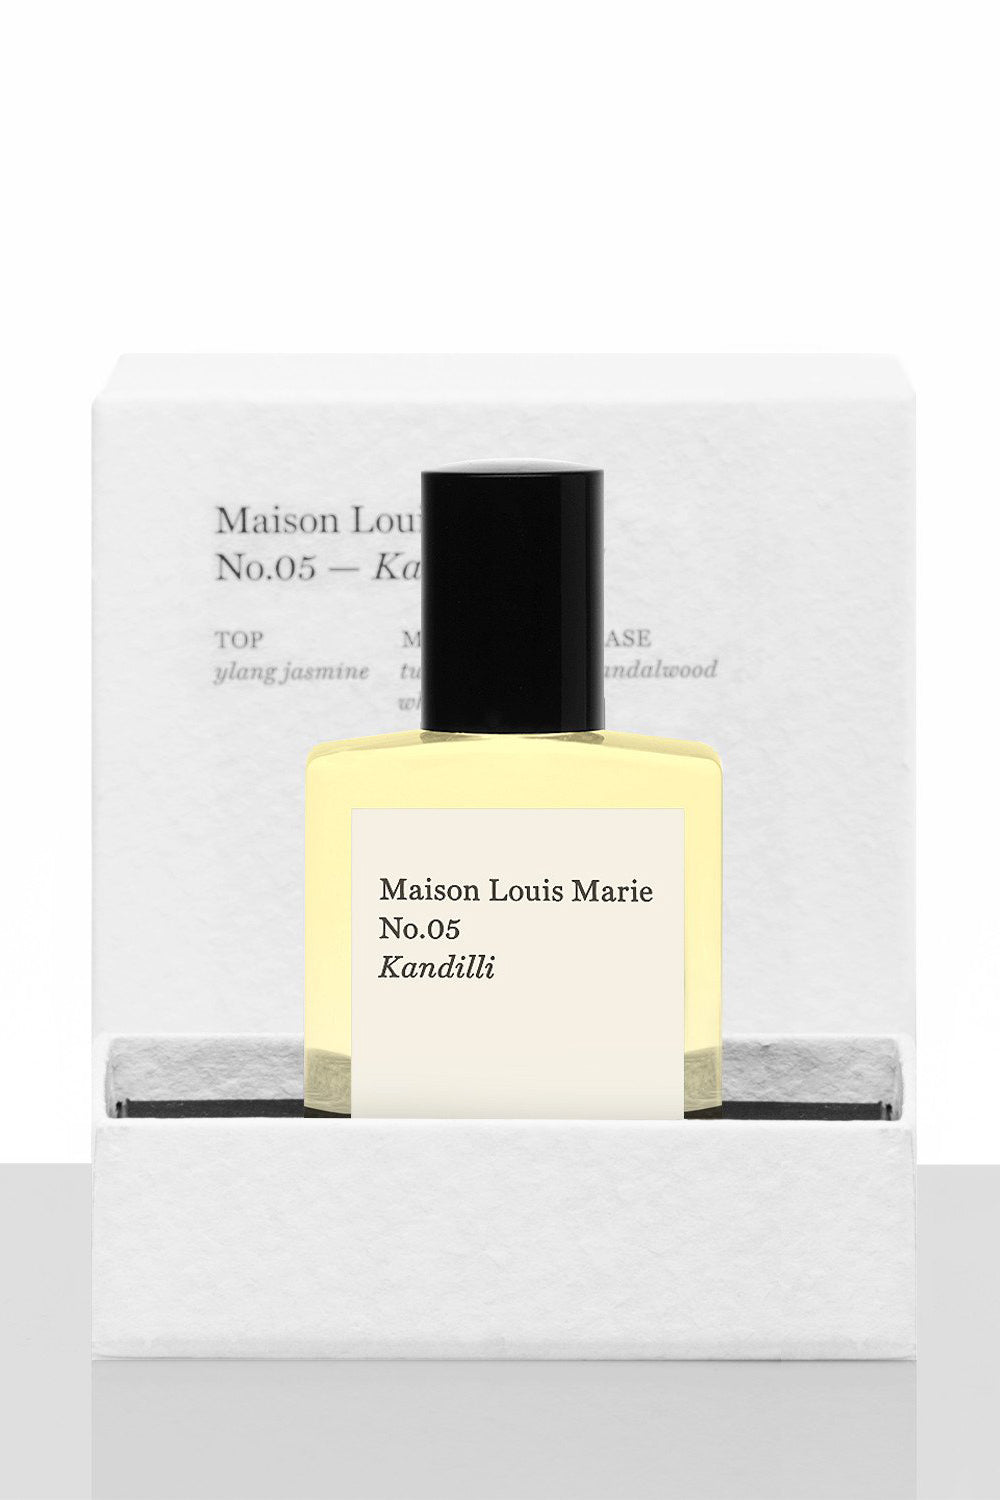 Maison Louis Marie No. 5 Kandilli Perfume Oil - Vert & Vogue